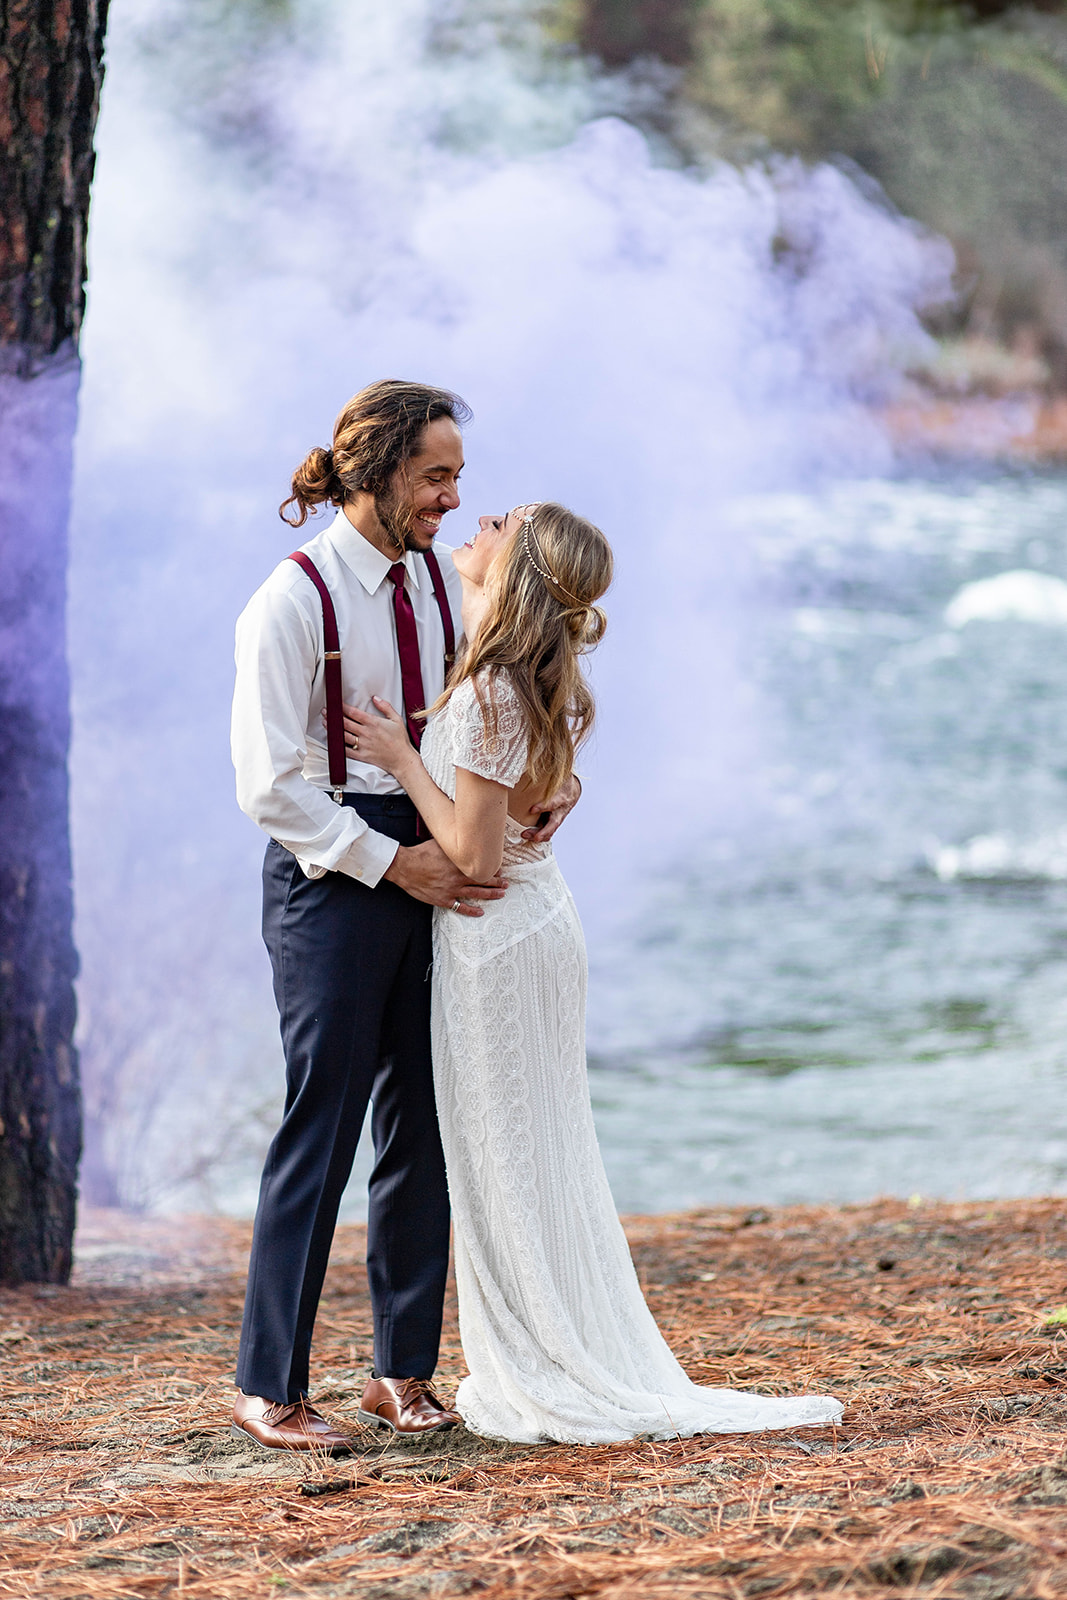 Colored Smoke Bomb Wedding Photo